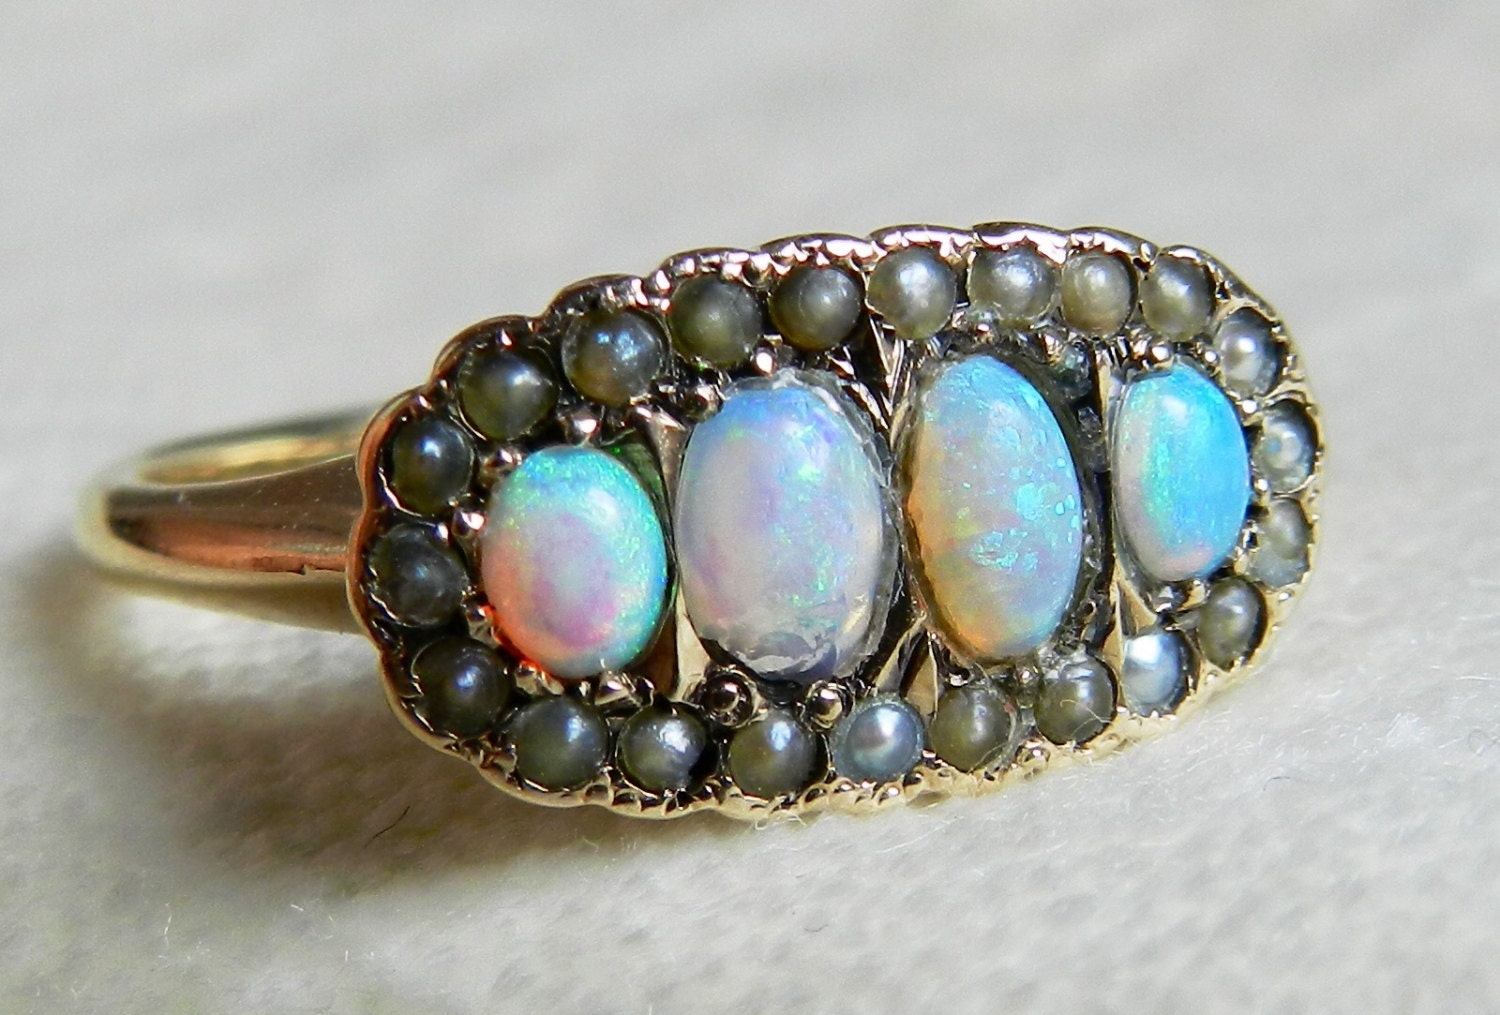 opal engagement ring australian blue opal seed pearl ring. Black Bedroom Furniture Sets. Home Design Ideas